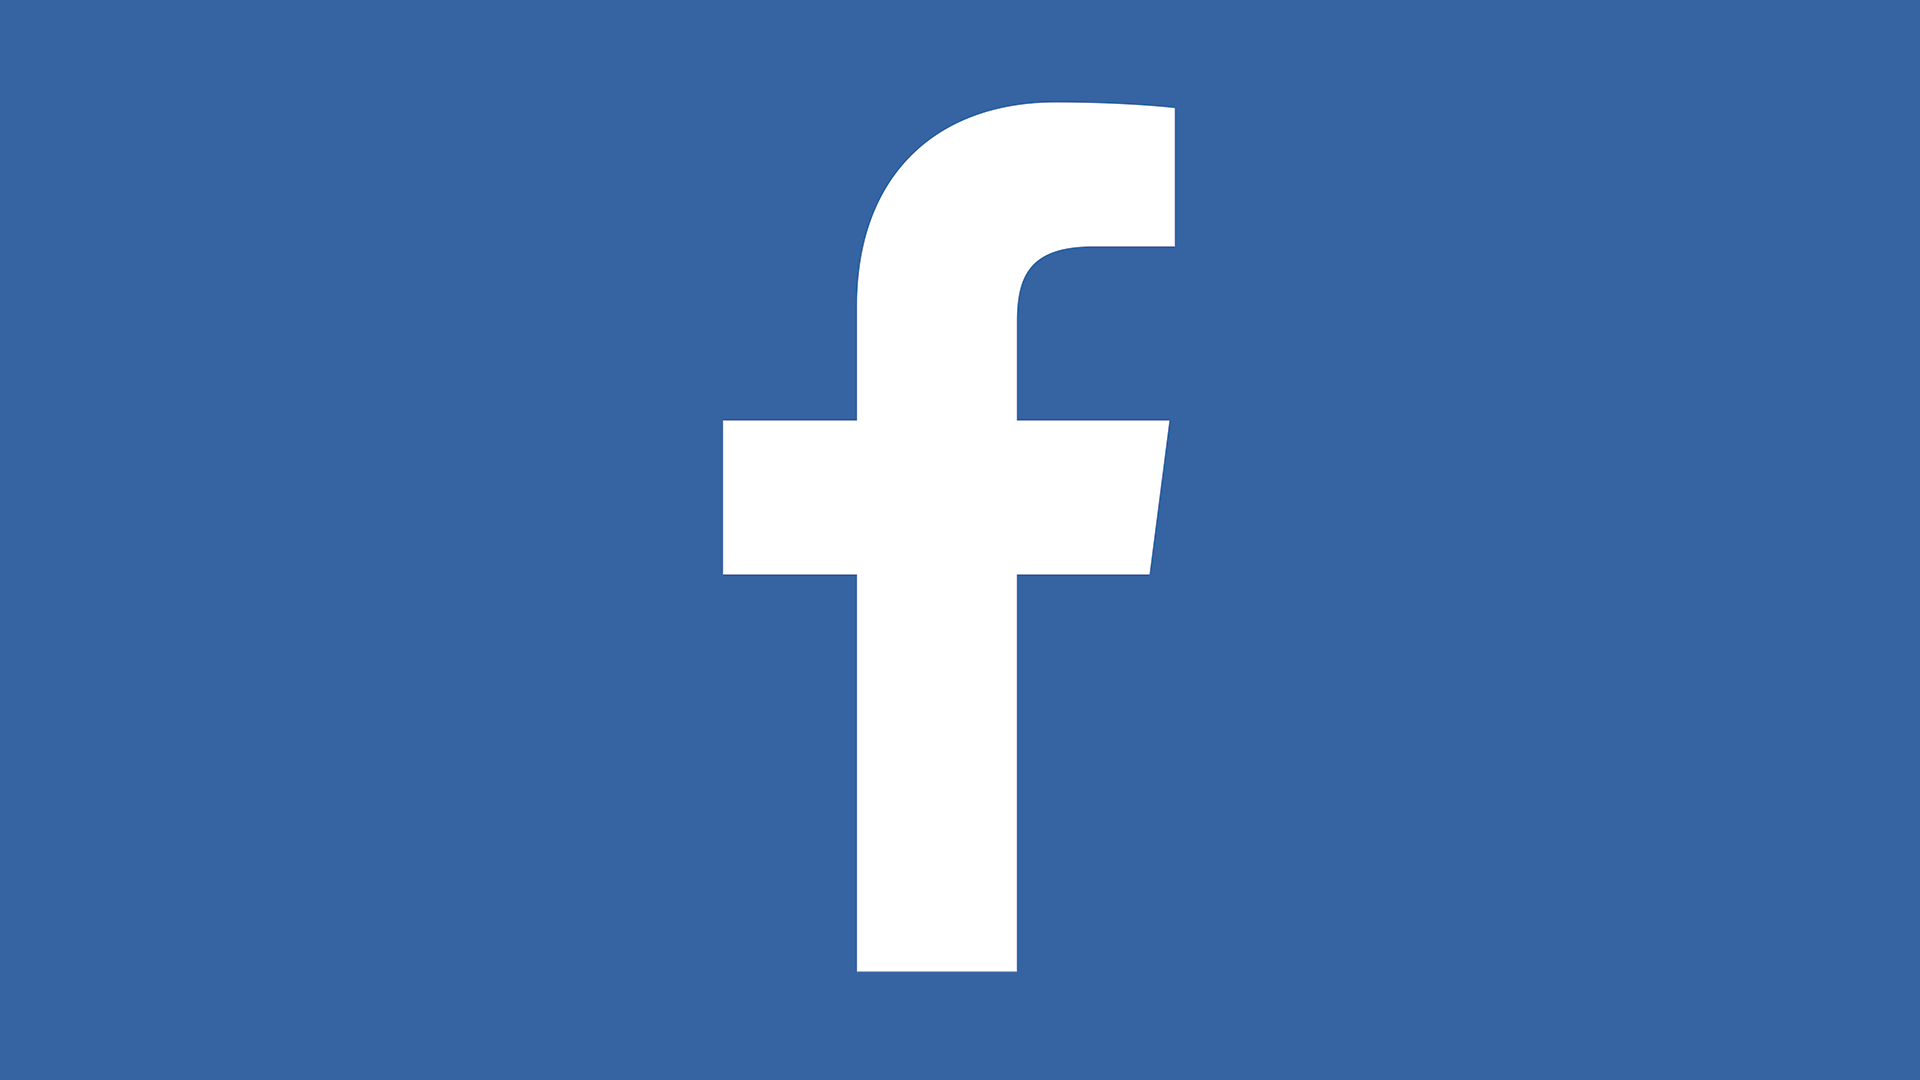 Facebook logo - Lent PNG HD